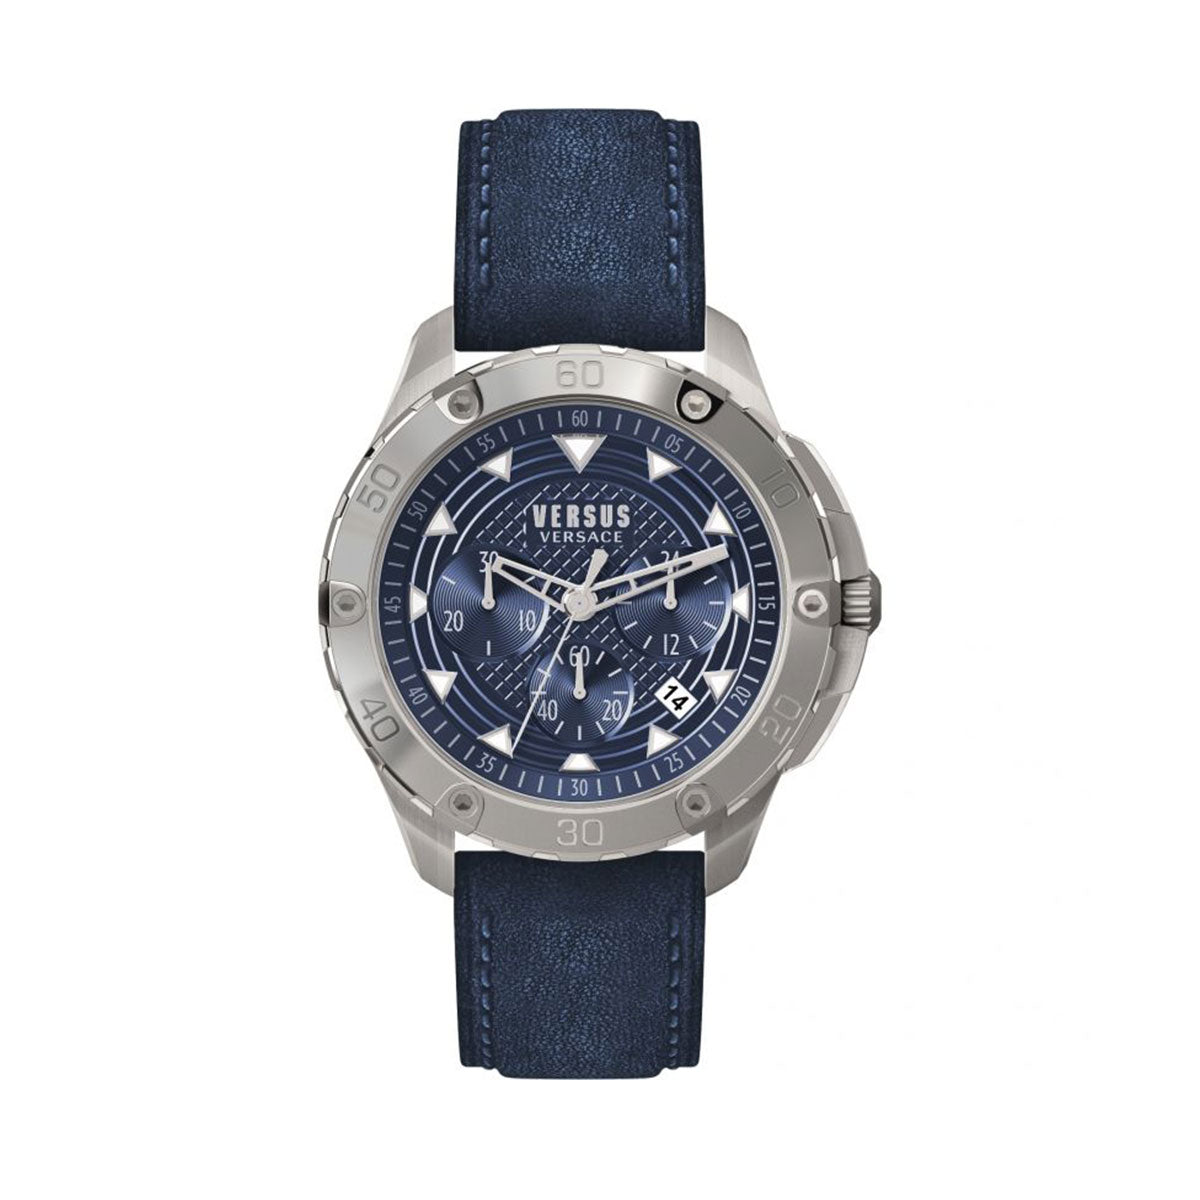 Versus Versace VSP060218 Simon's Town Men's Watch